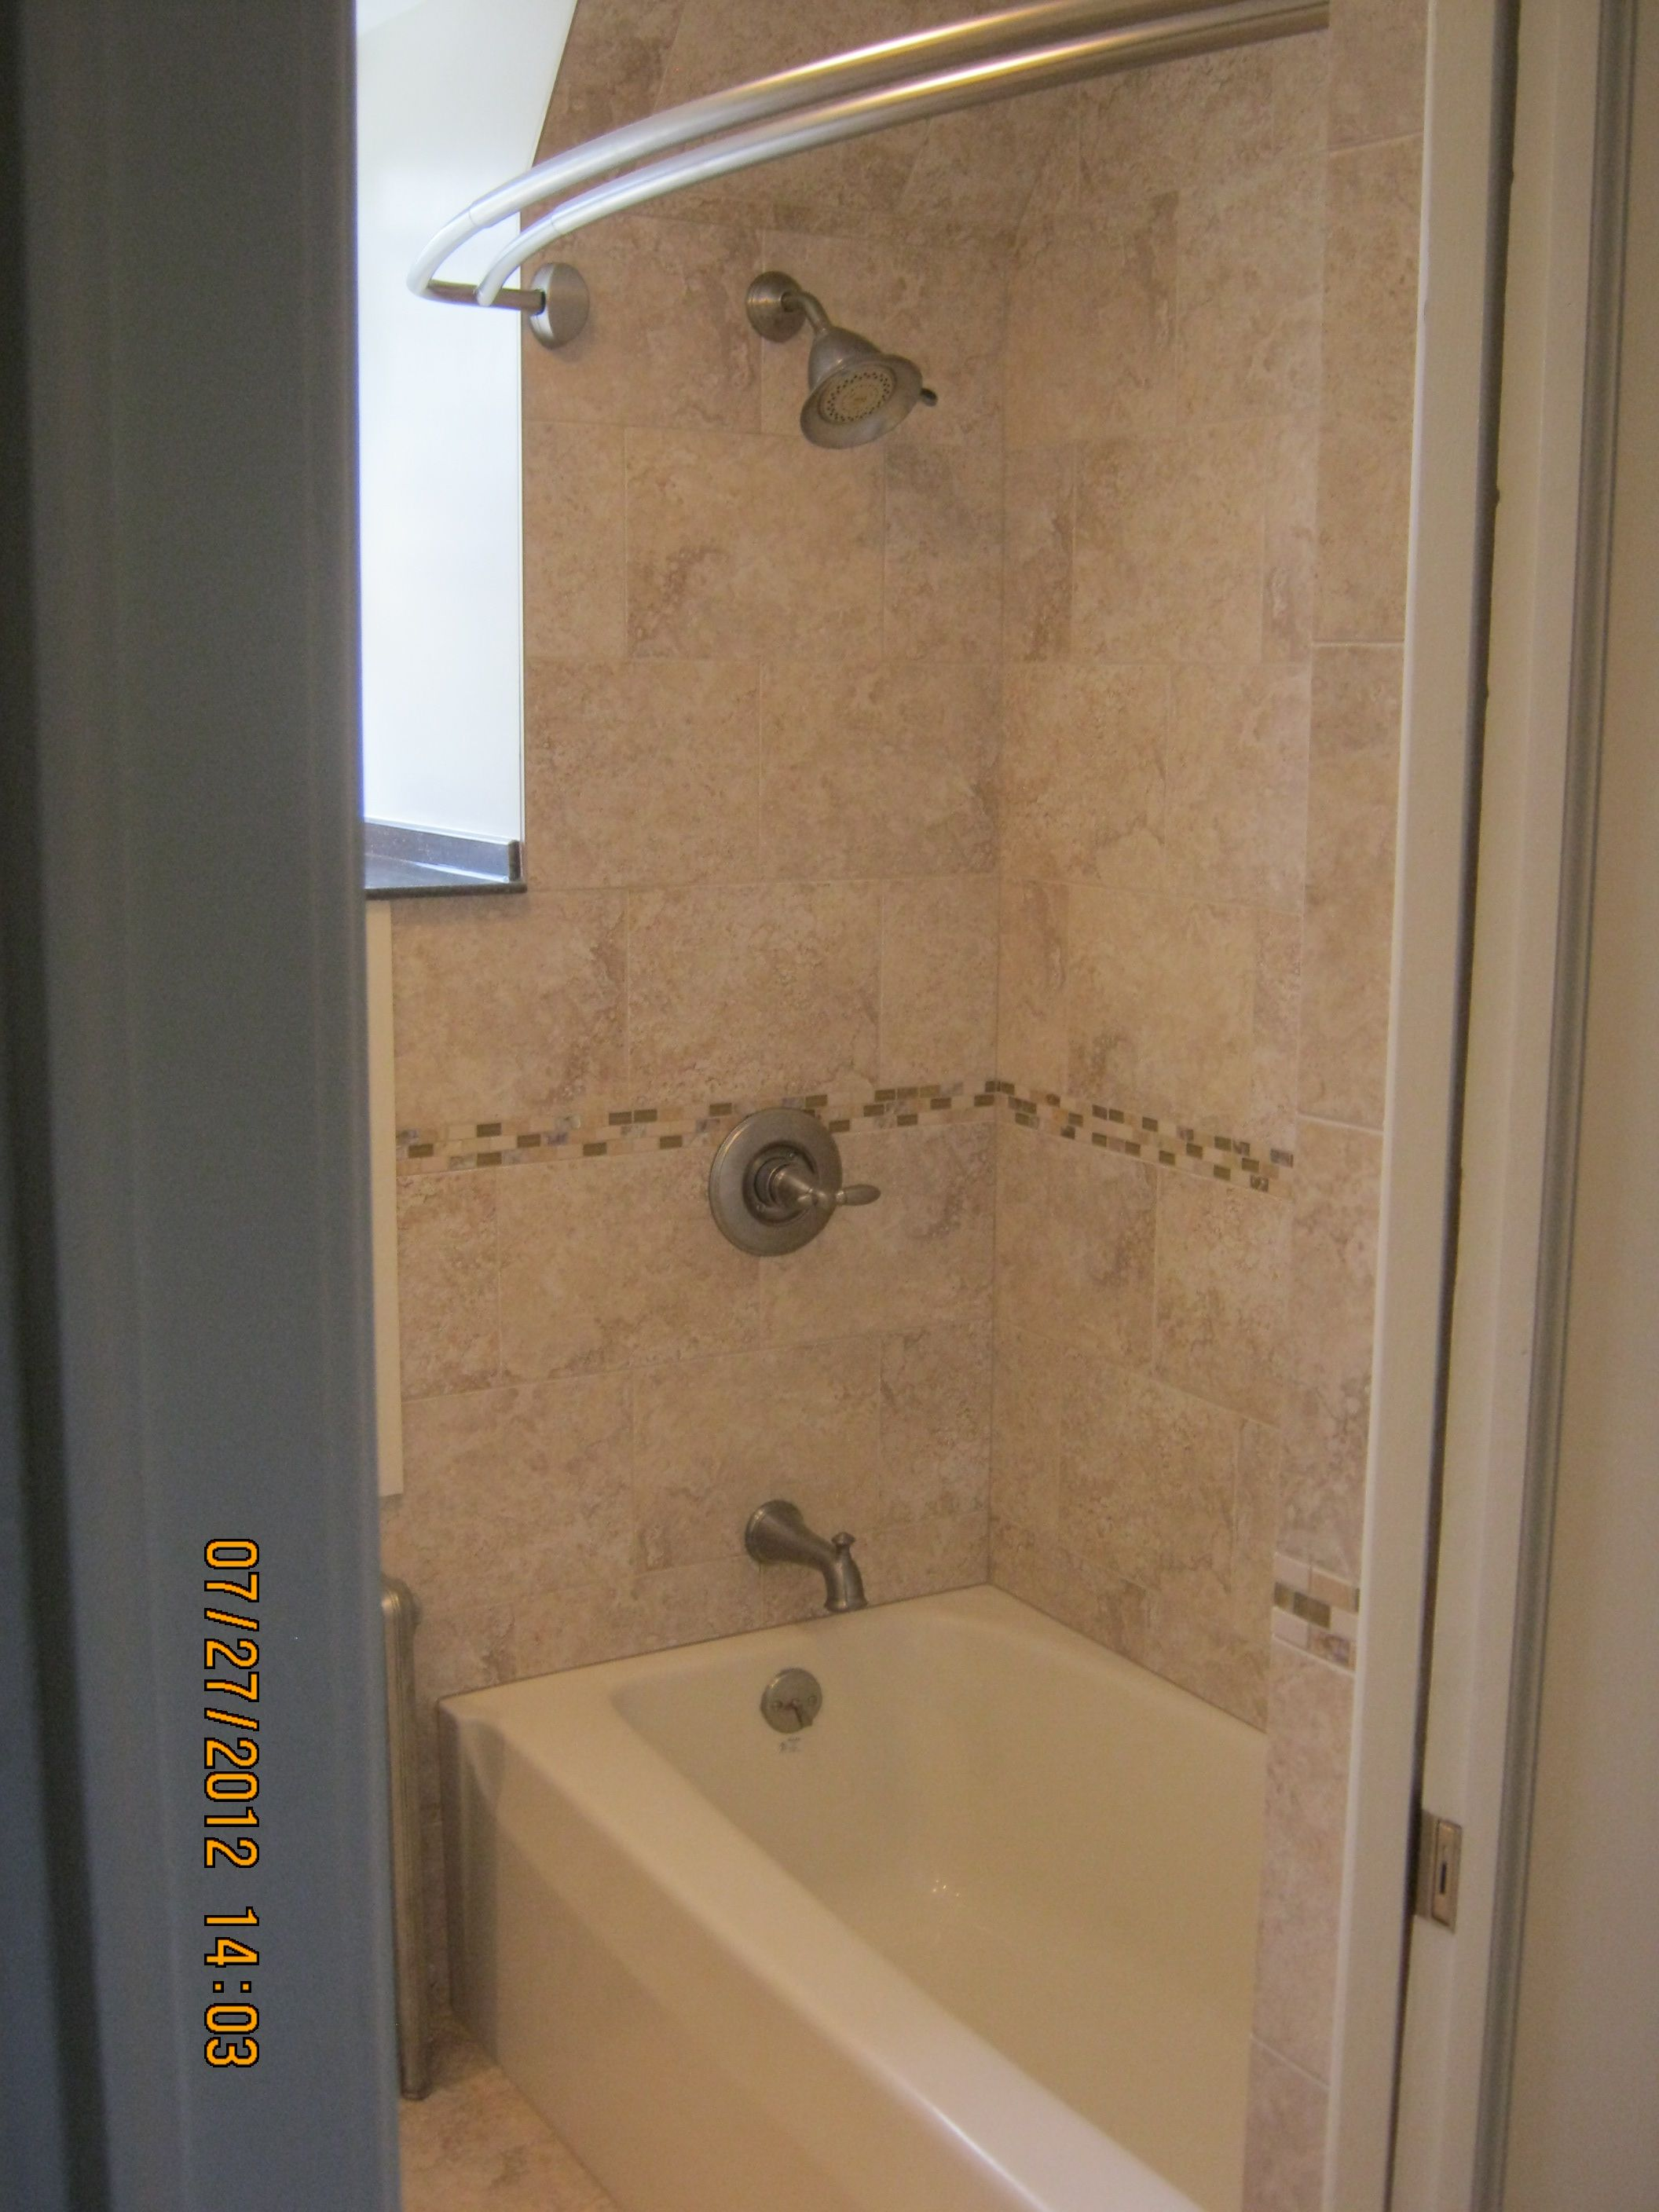 Shower bath | Bathroom remodeling contractors, Bathrooms ...